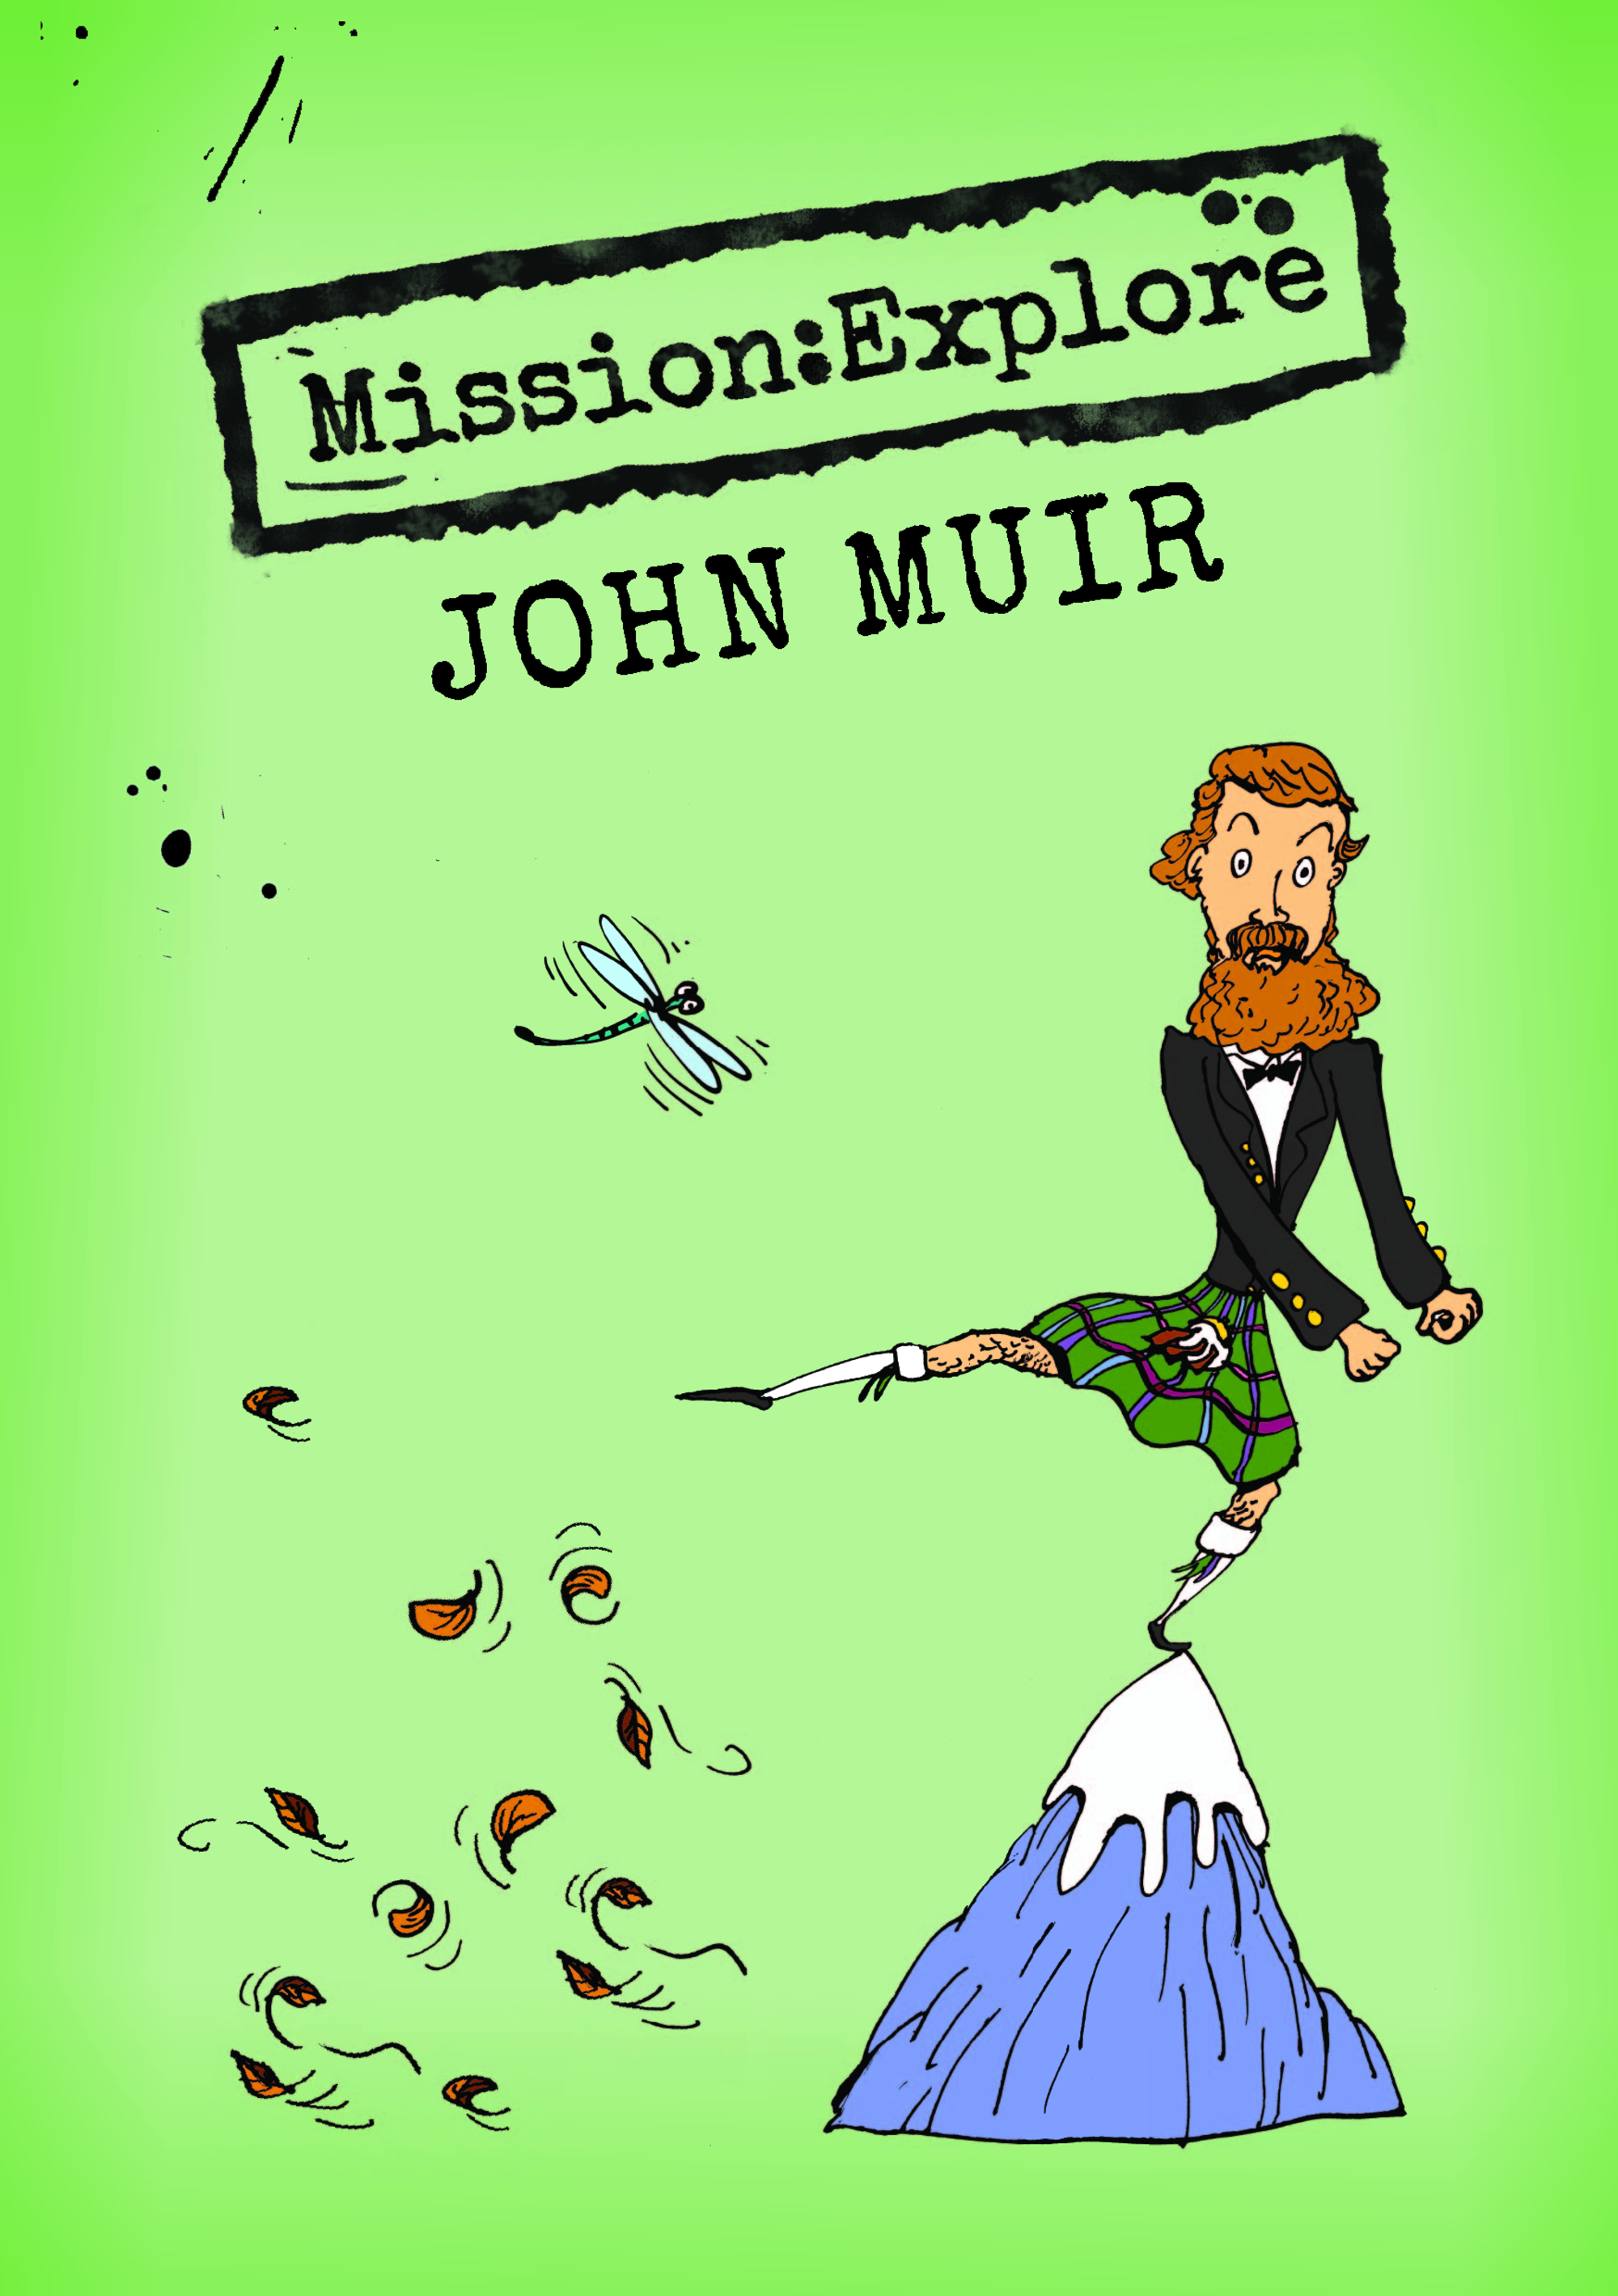 Mission:Explore John Muir